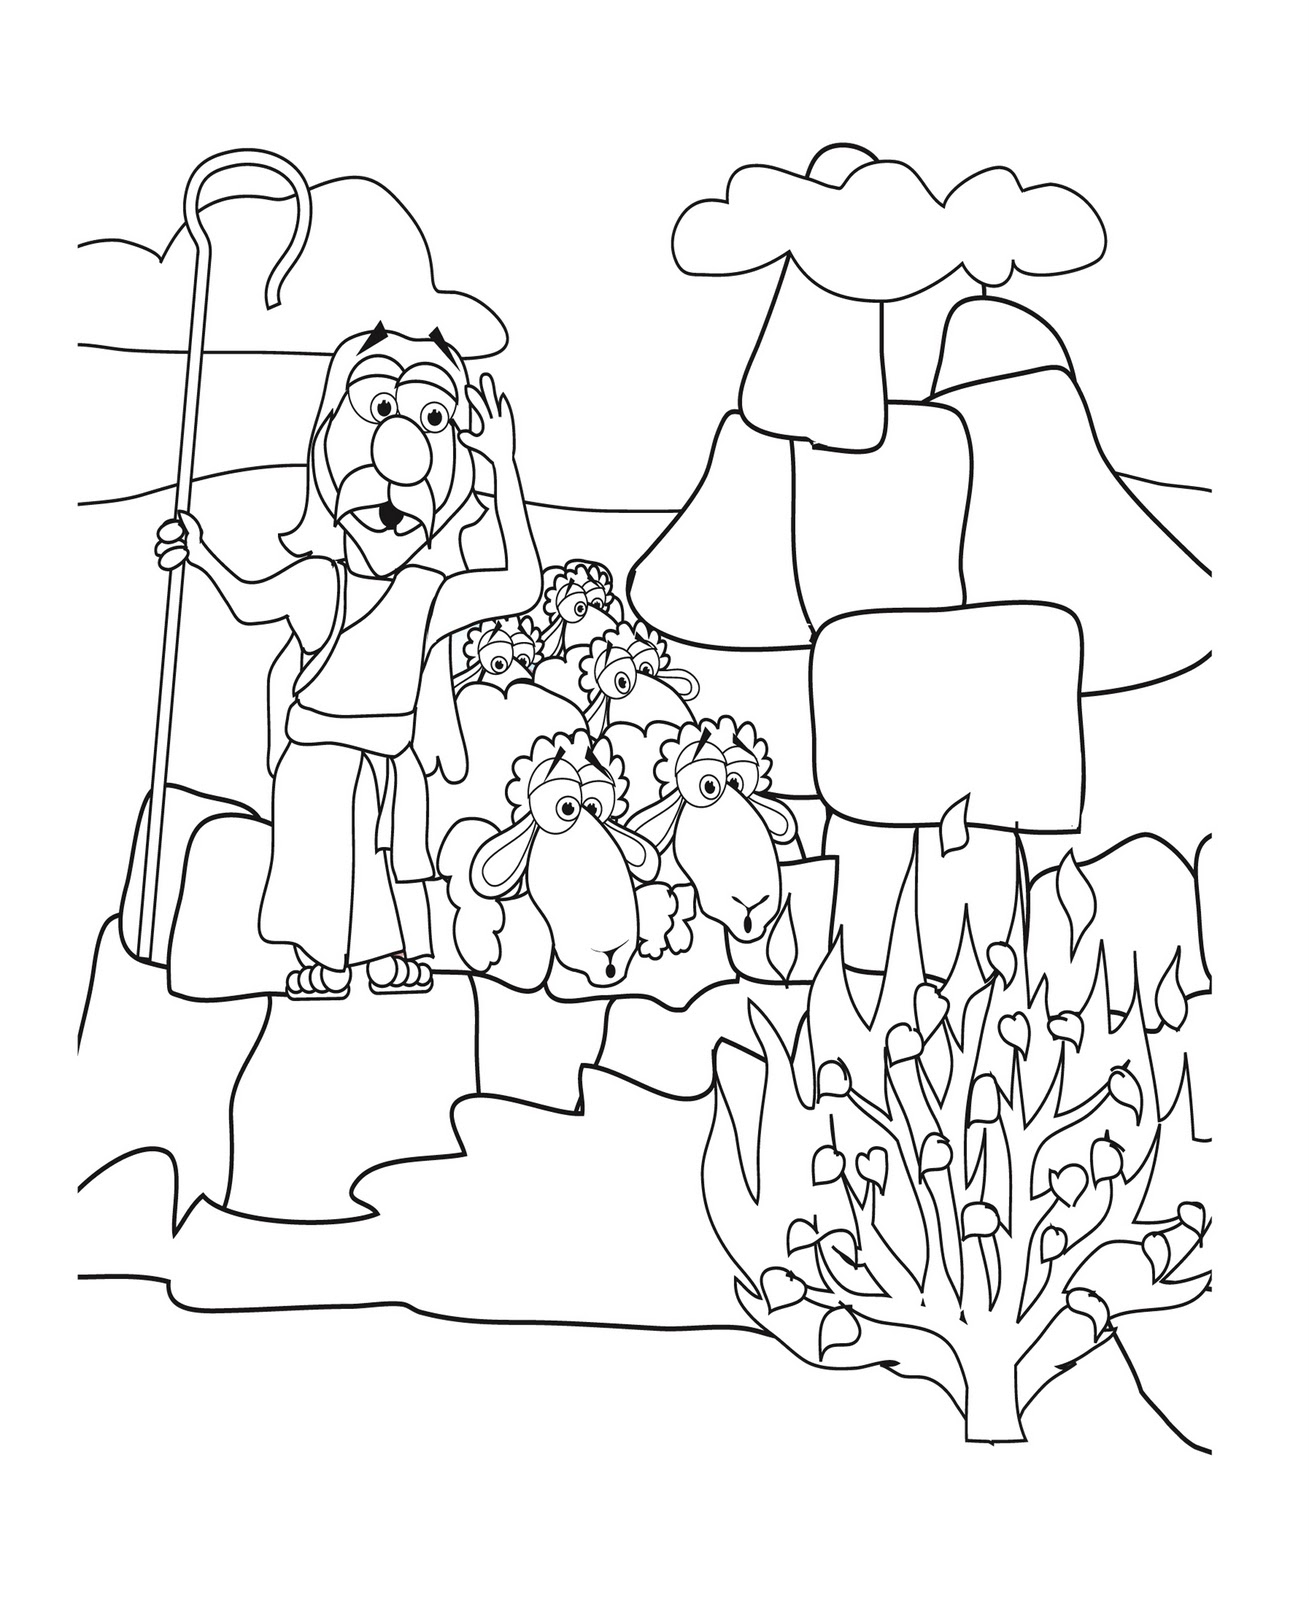 Coloring Pages Quail From Heaven - Mrbiblehead blogspot com moses questiones god